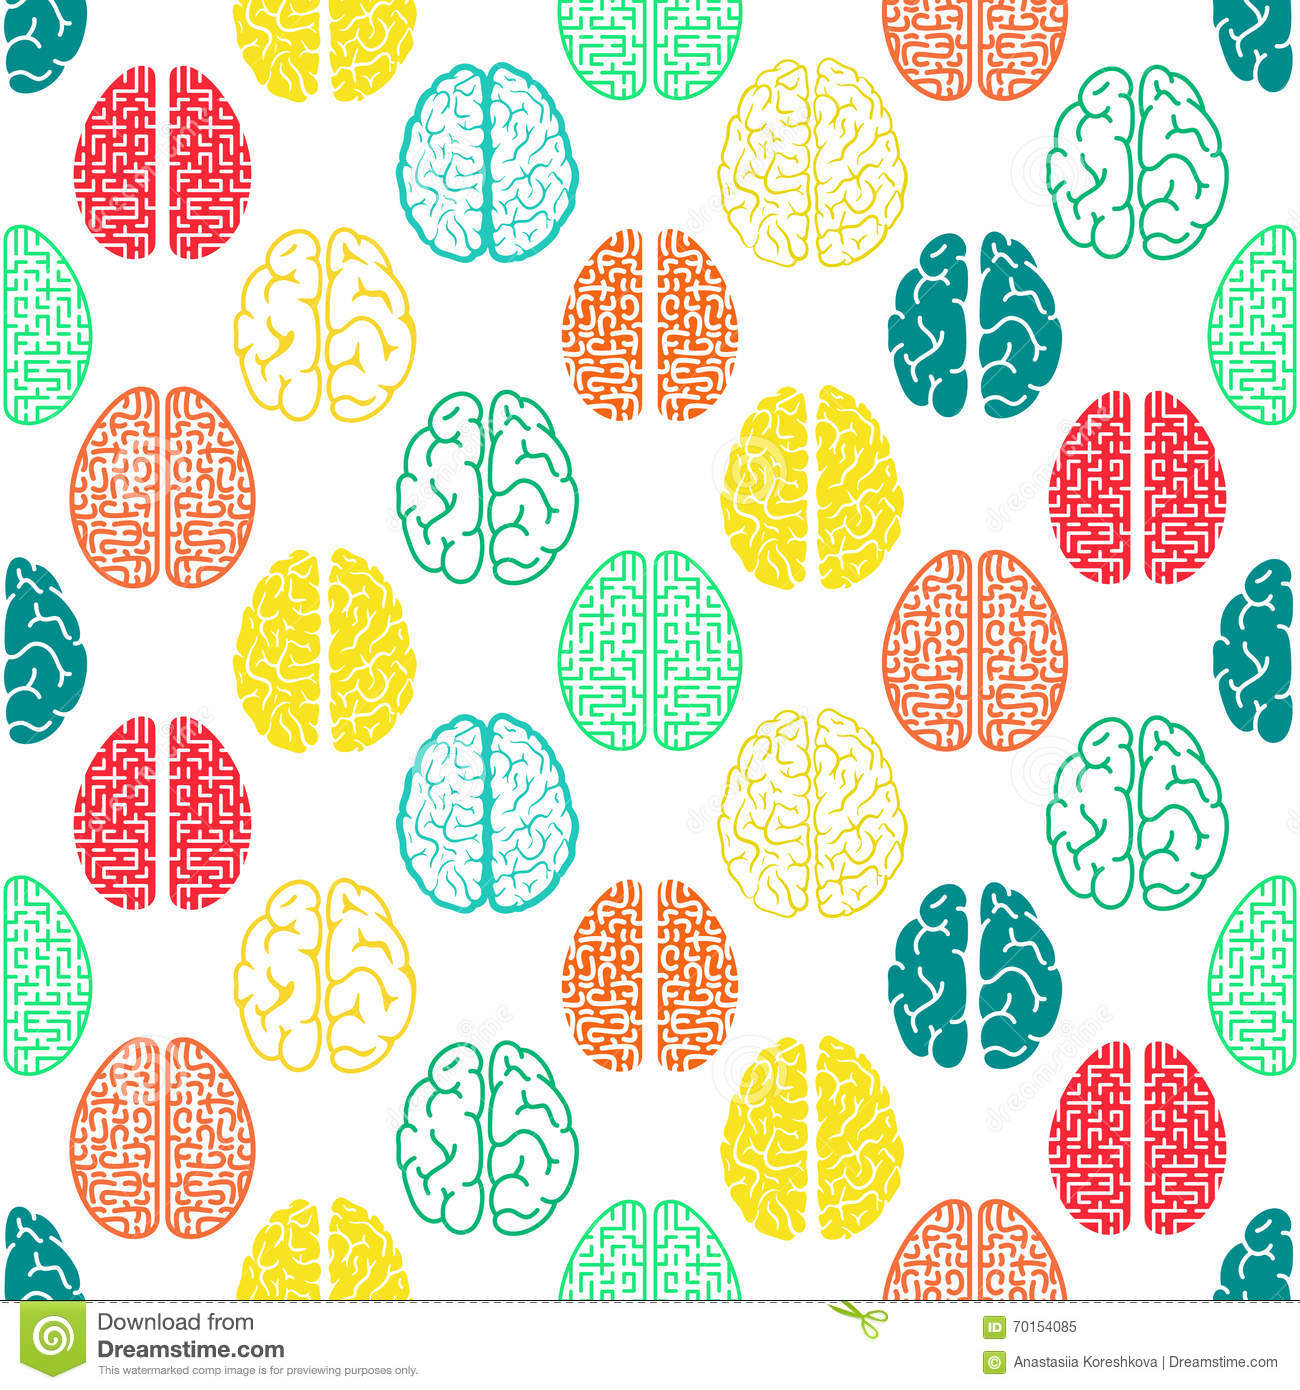 brain pattern wallpaper - photo #11